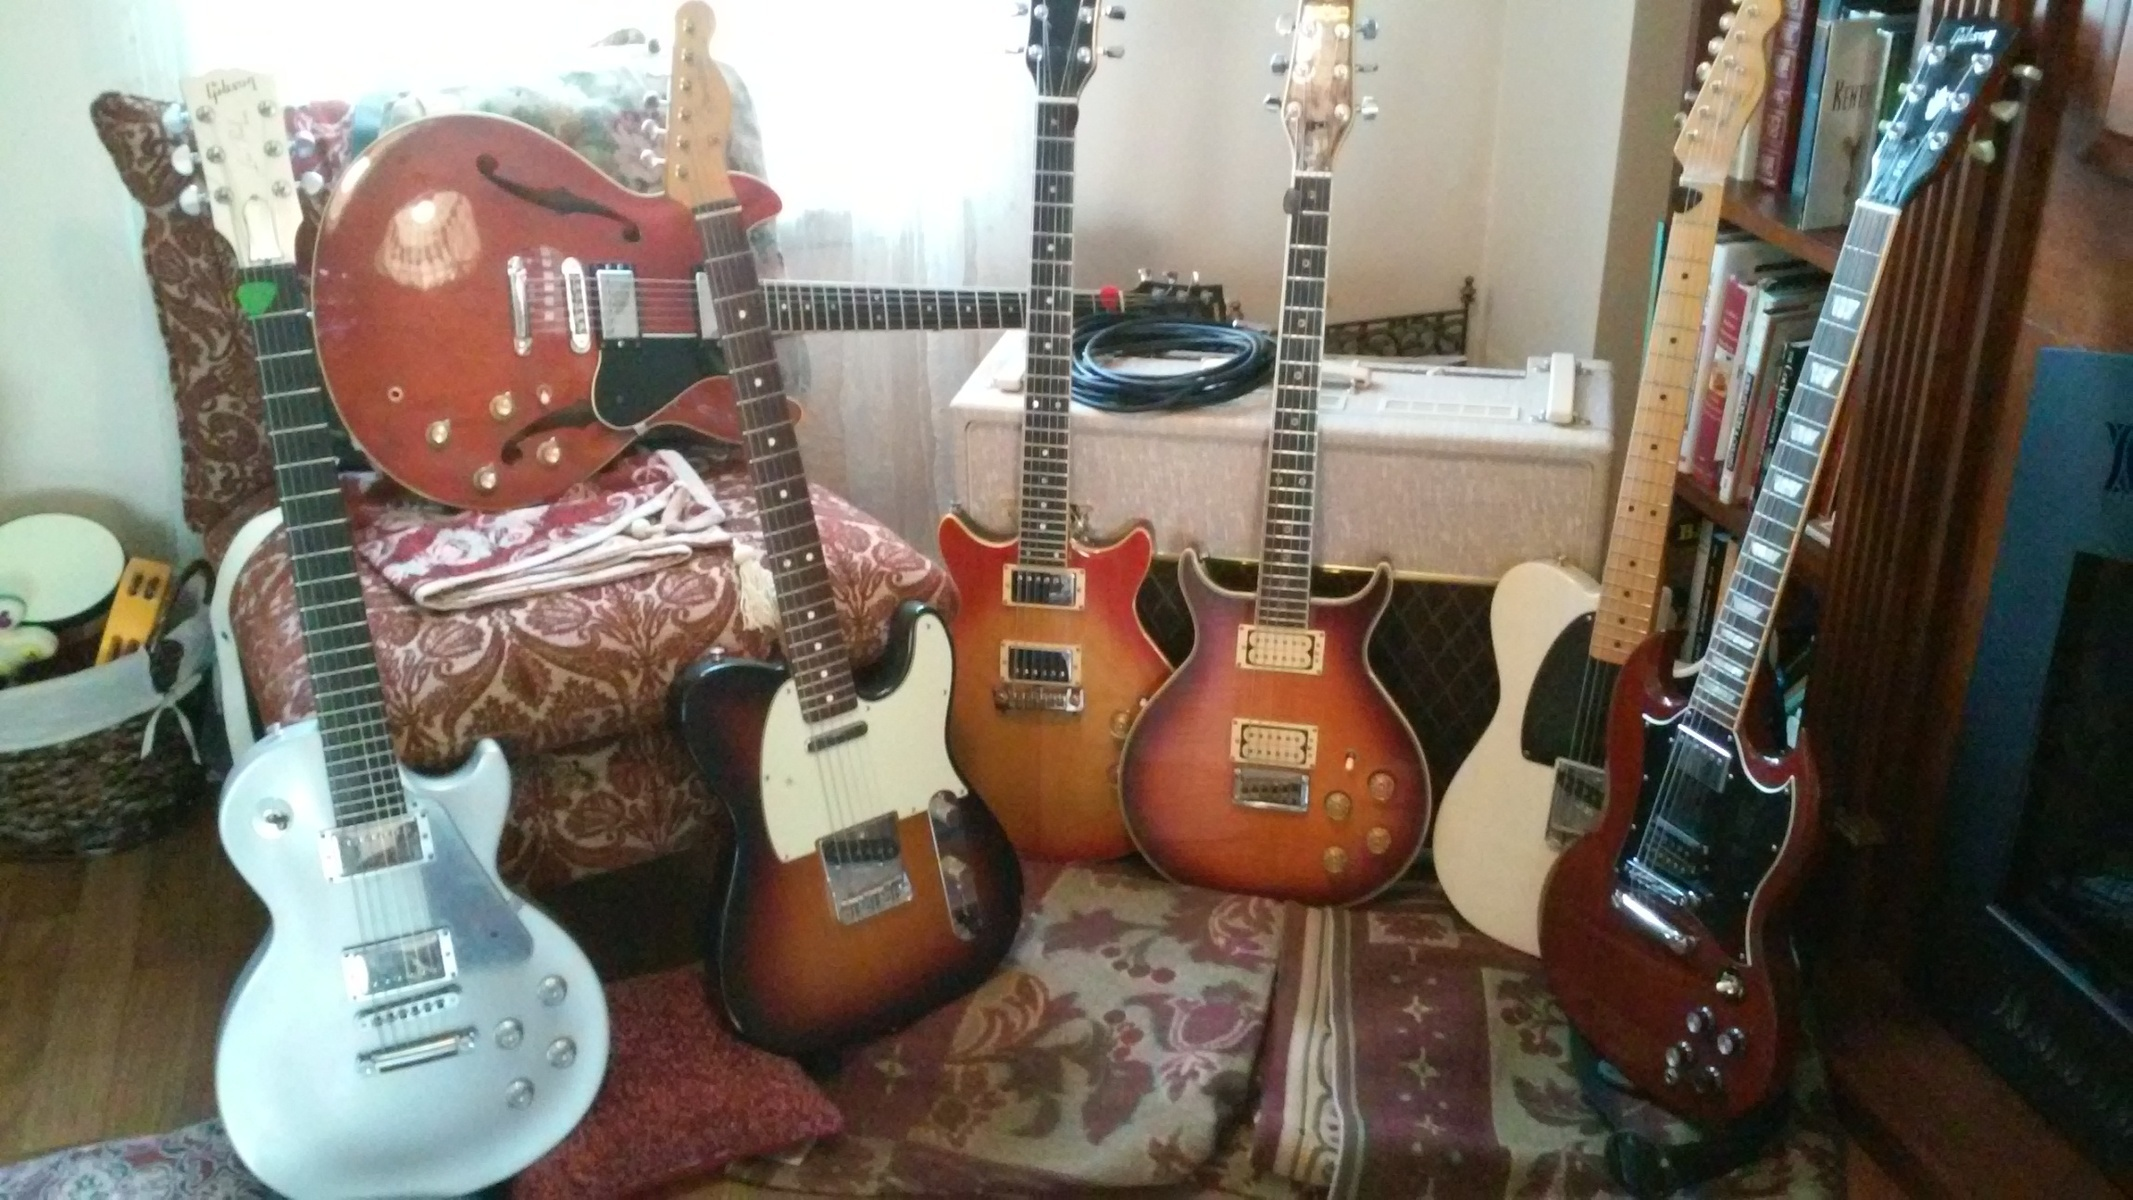 Photo of Vox AC30HW2 and more gear in a guitar